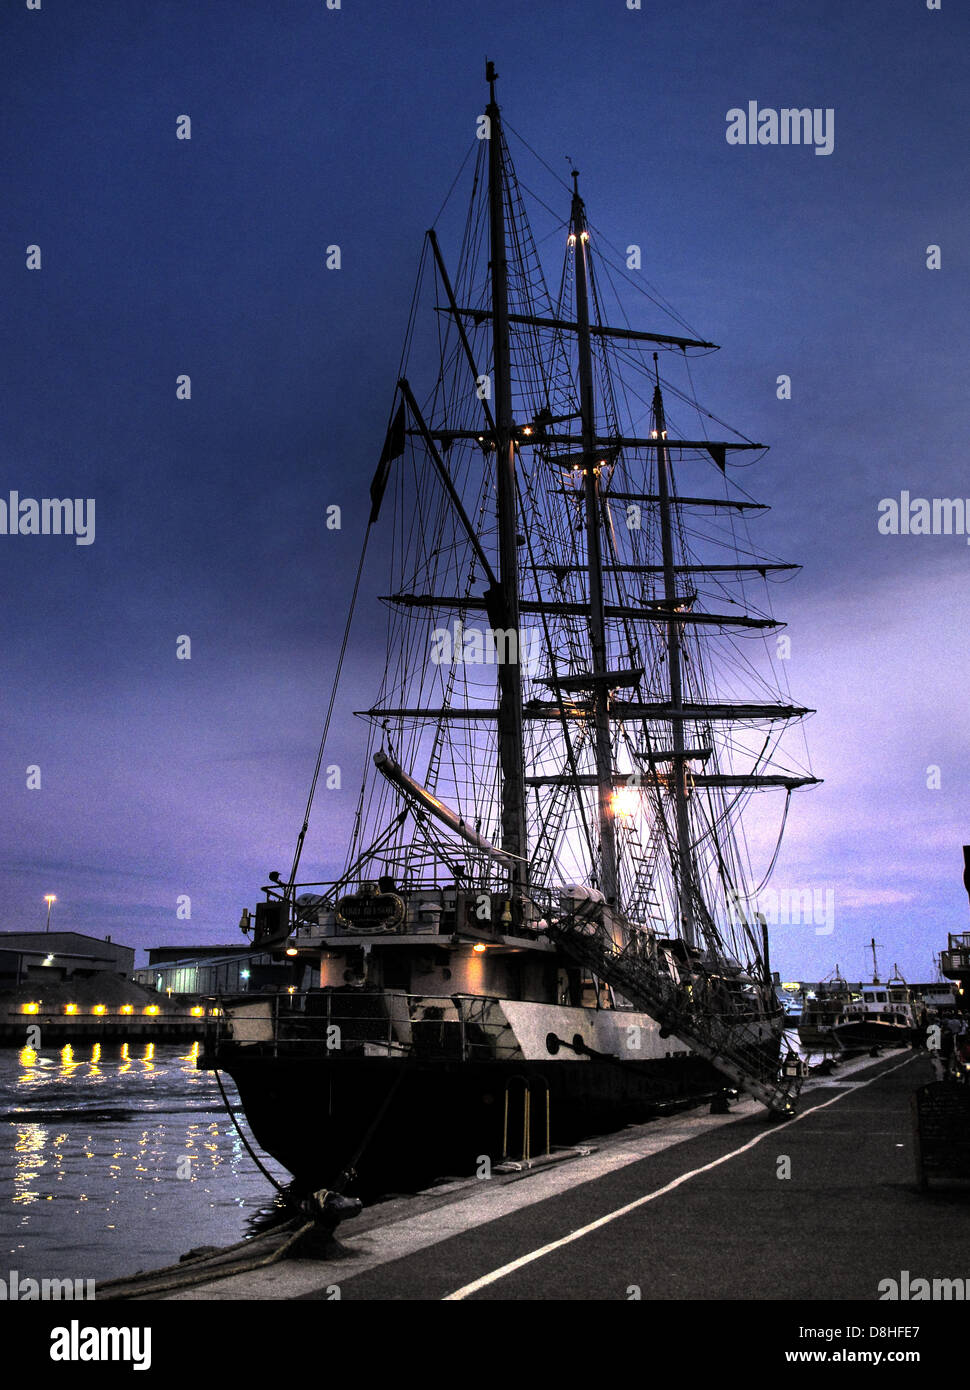 Lord Nelson Tenacious JST Historic sailing Ship Poole Harbour Dorset, England, UK at dusk - Stock Image